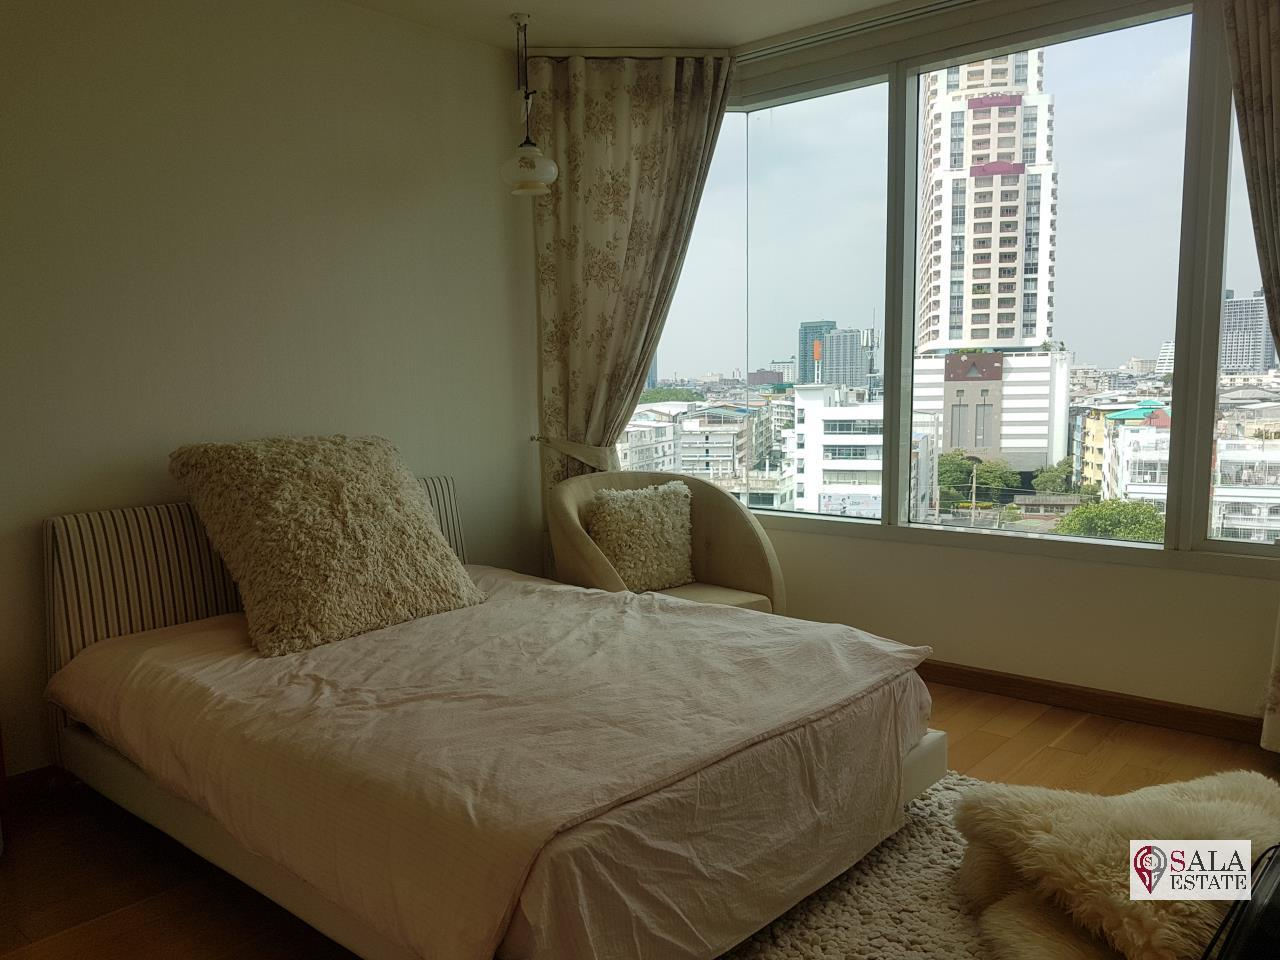 SALA ESTATE Agency's WATERMARK CHAOPHRAYA RIVER – RIVERSIDE-NEAR ICON SIAM,豪华公寓,河景房, 3卧3卫,家具齐全 5